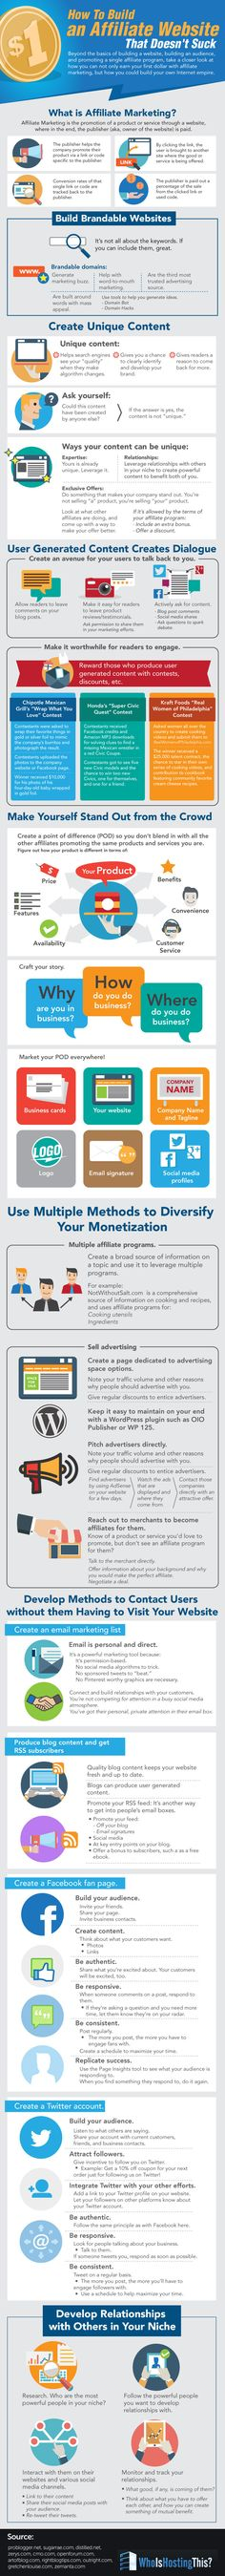 How to Build An Affiliate Website That Doesn't Suck #infographic